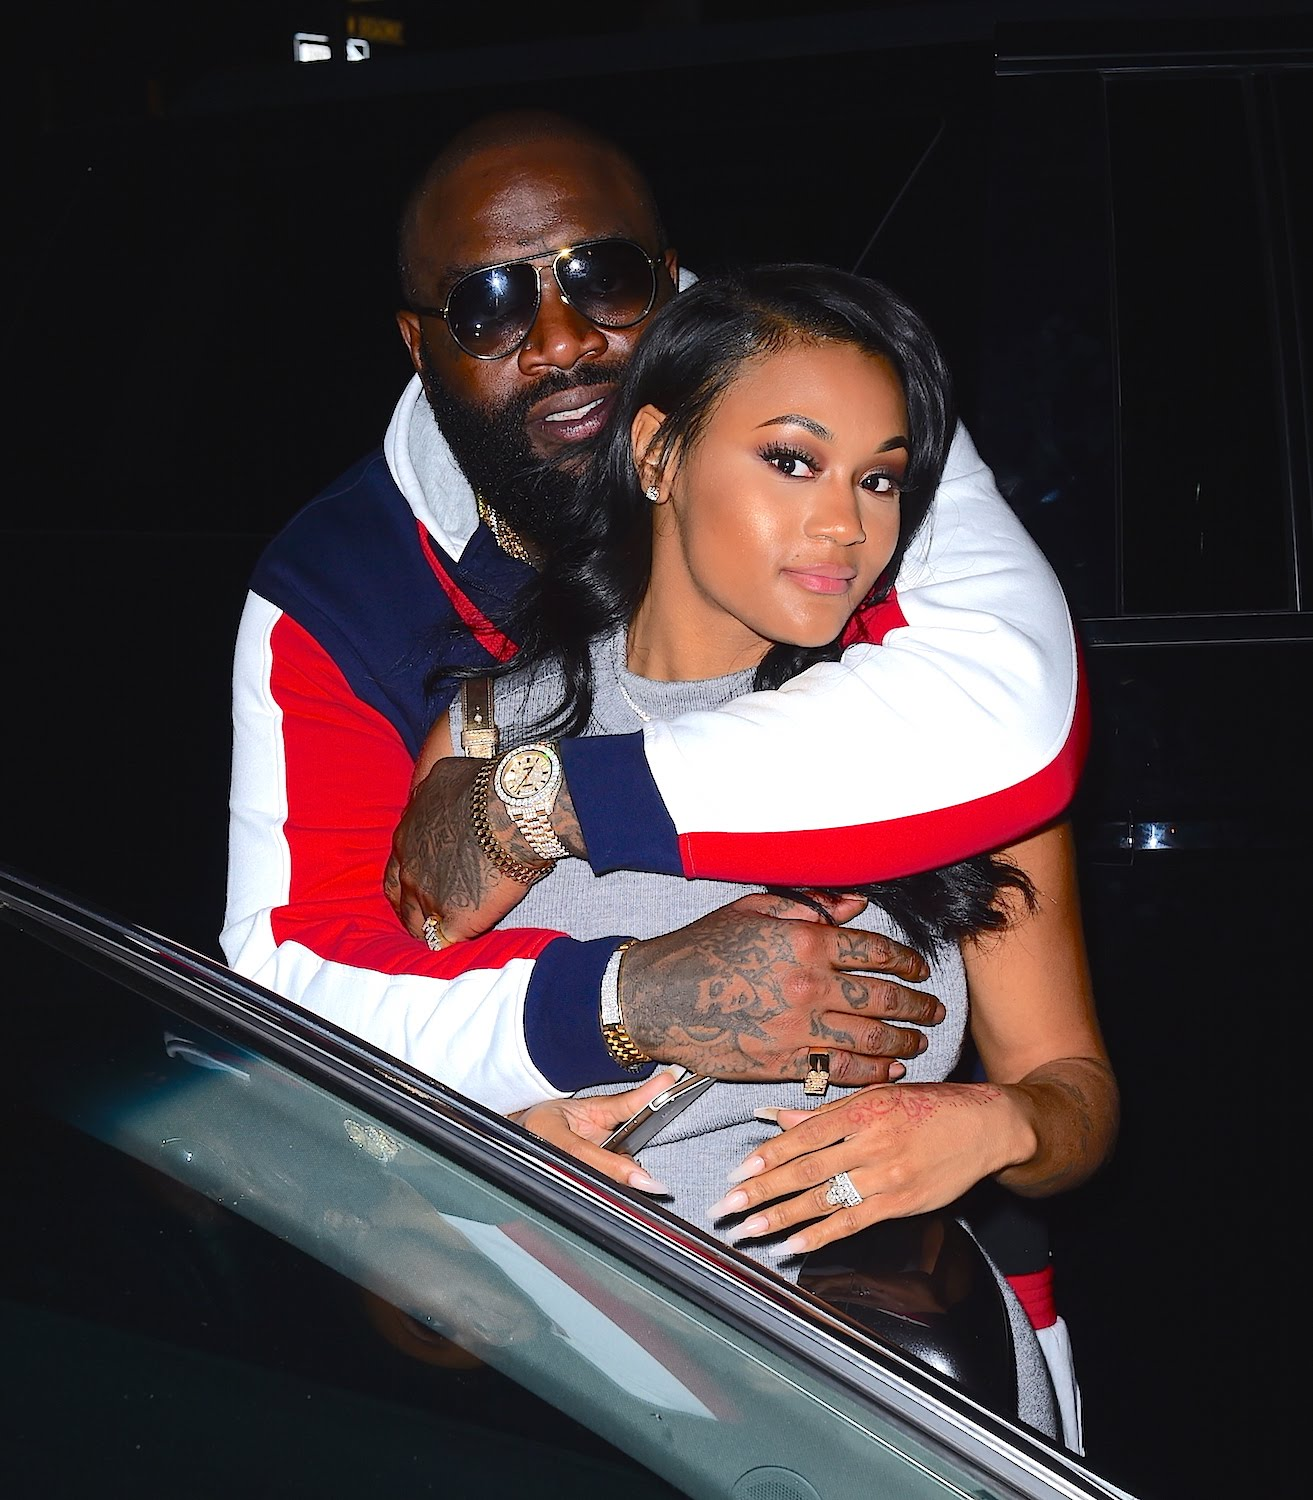 lira galore and rick ross dating The romance is over for rick ross and lira galore less than two months after making the announcement, the couple has called off its engagement the two had a blow out fight in atlanta and.